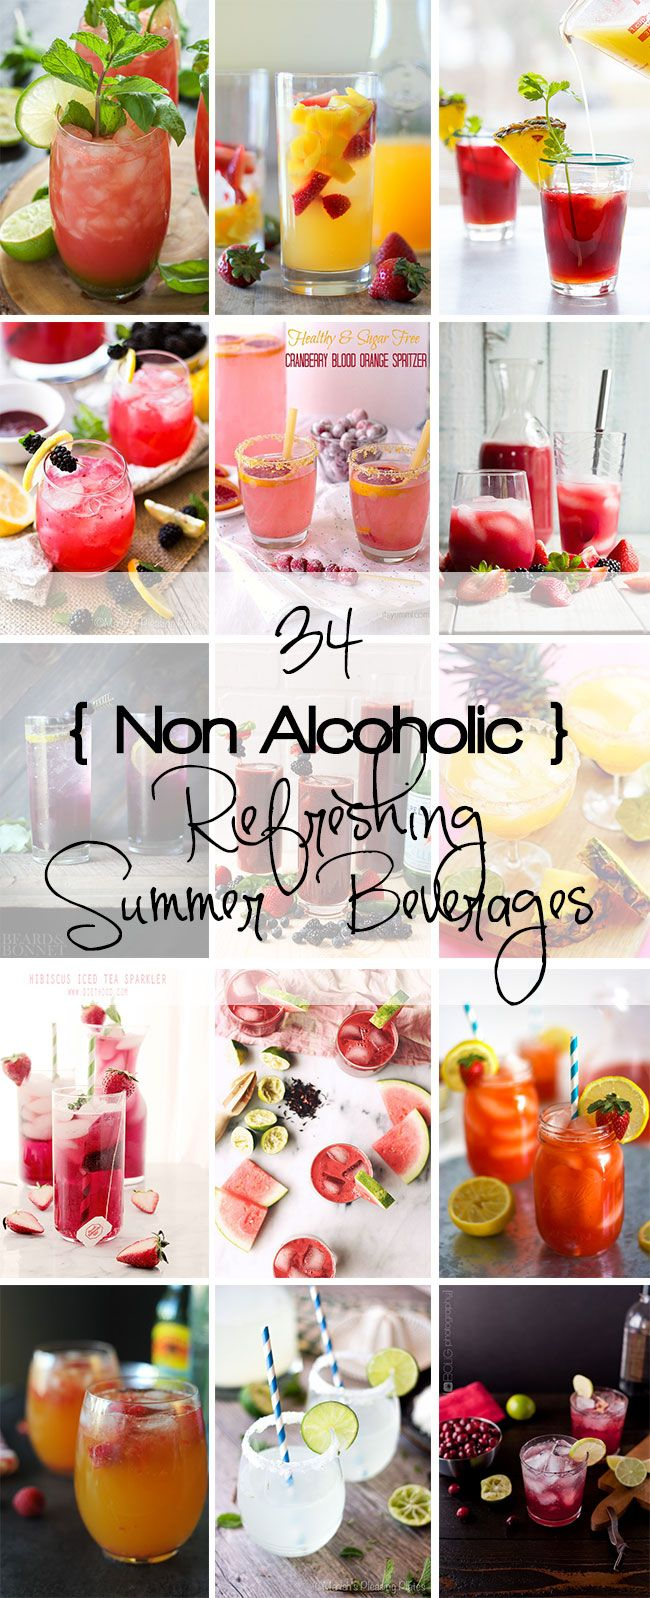 34 Non Alcoholic Refreshing Summer Beverages to keep your taste buds quenched and guessing not all summer long but all year long!